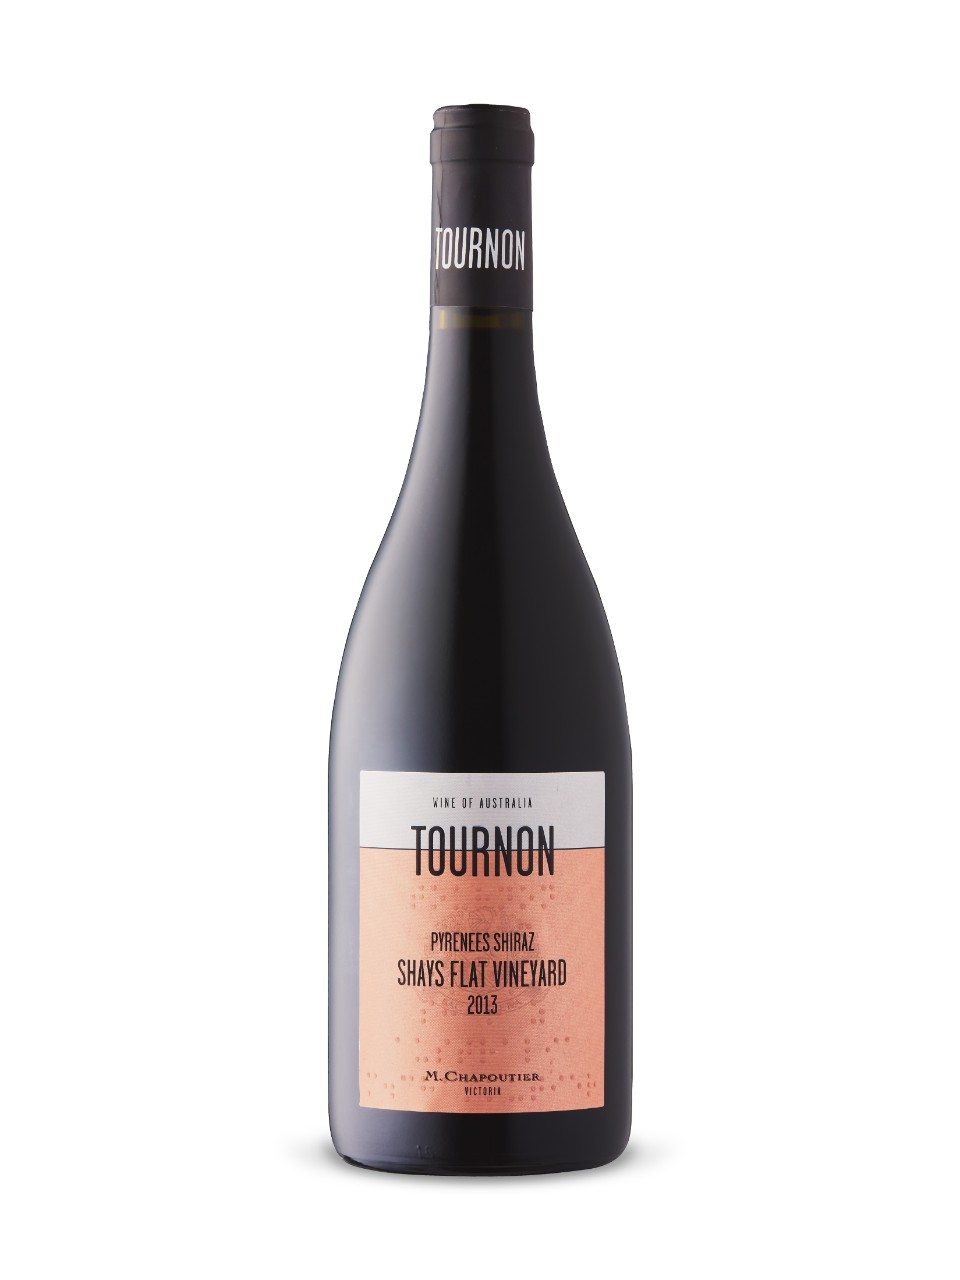 Tournon Shays Flat Vineyard Shiraz 2013 from LCBO